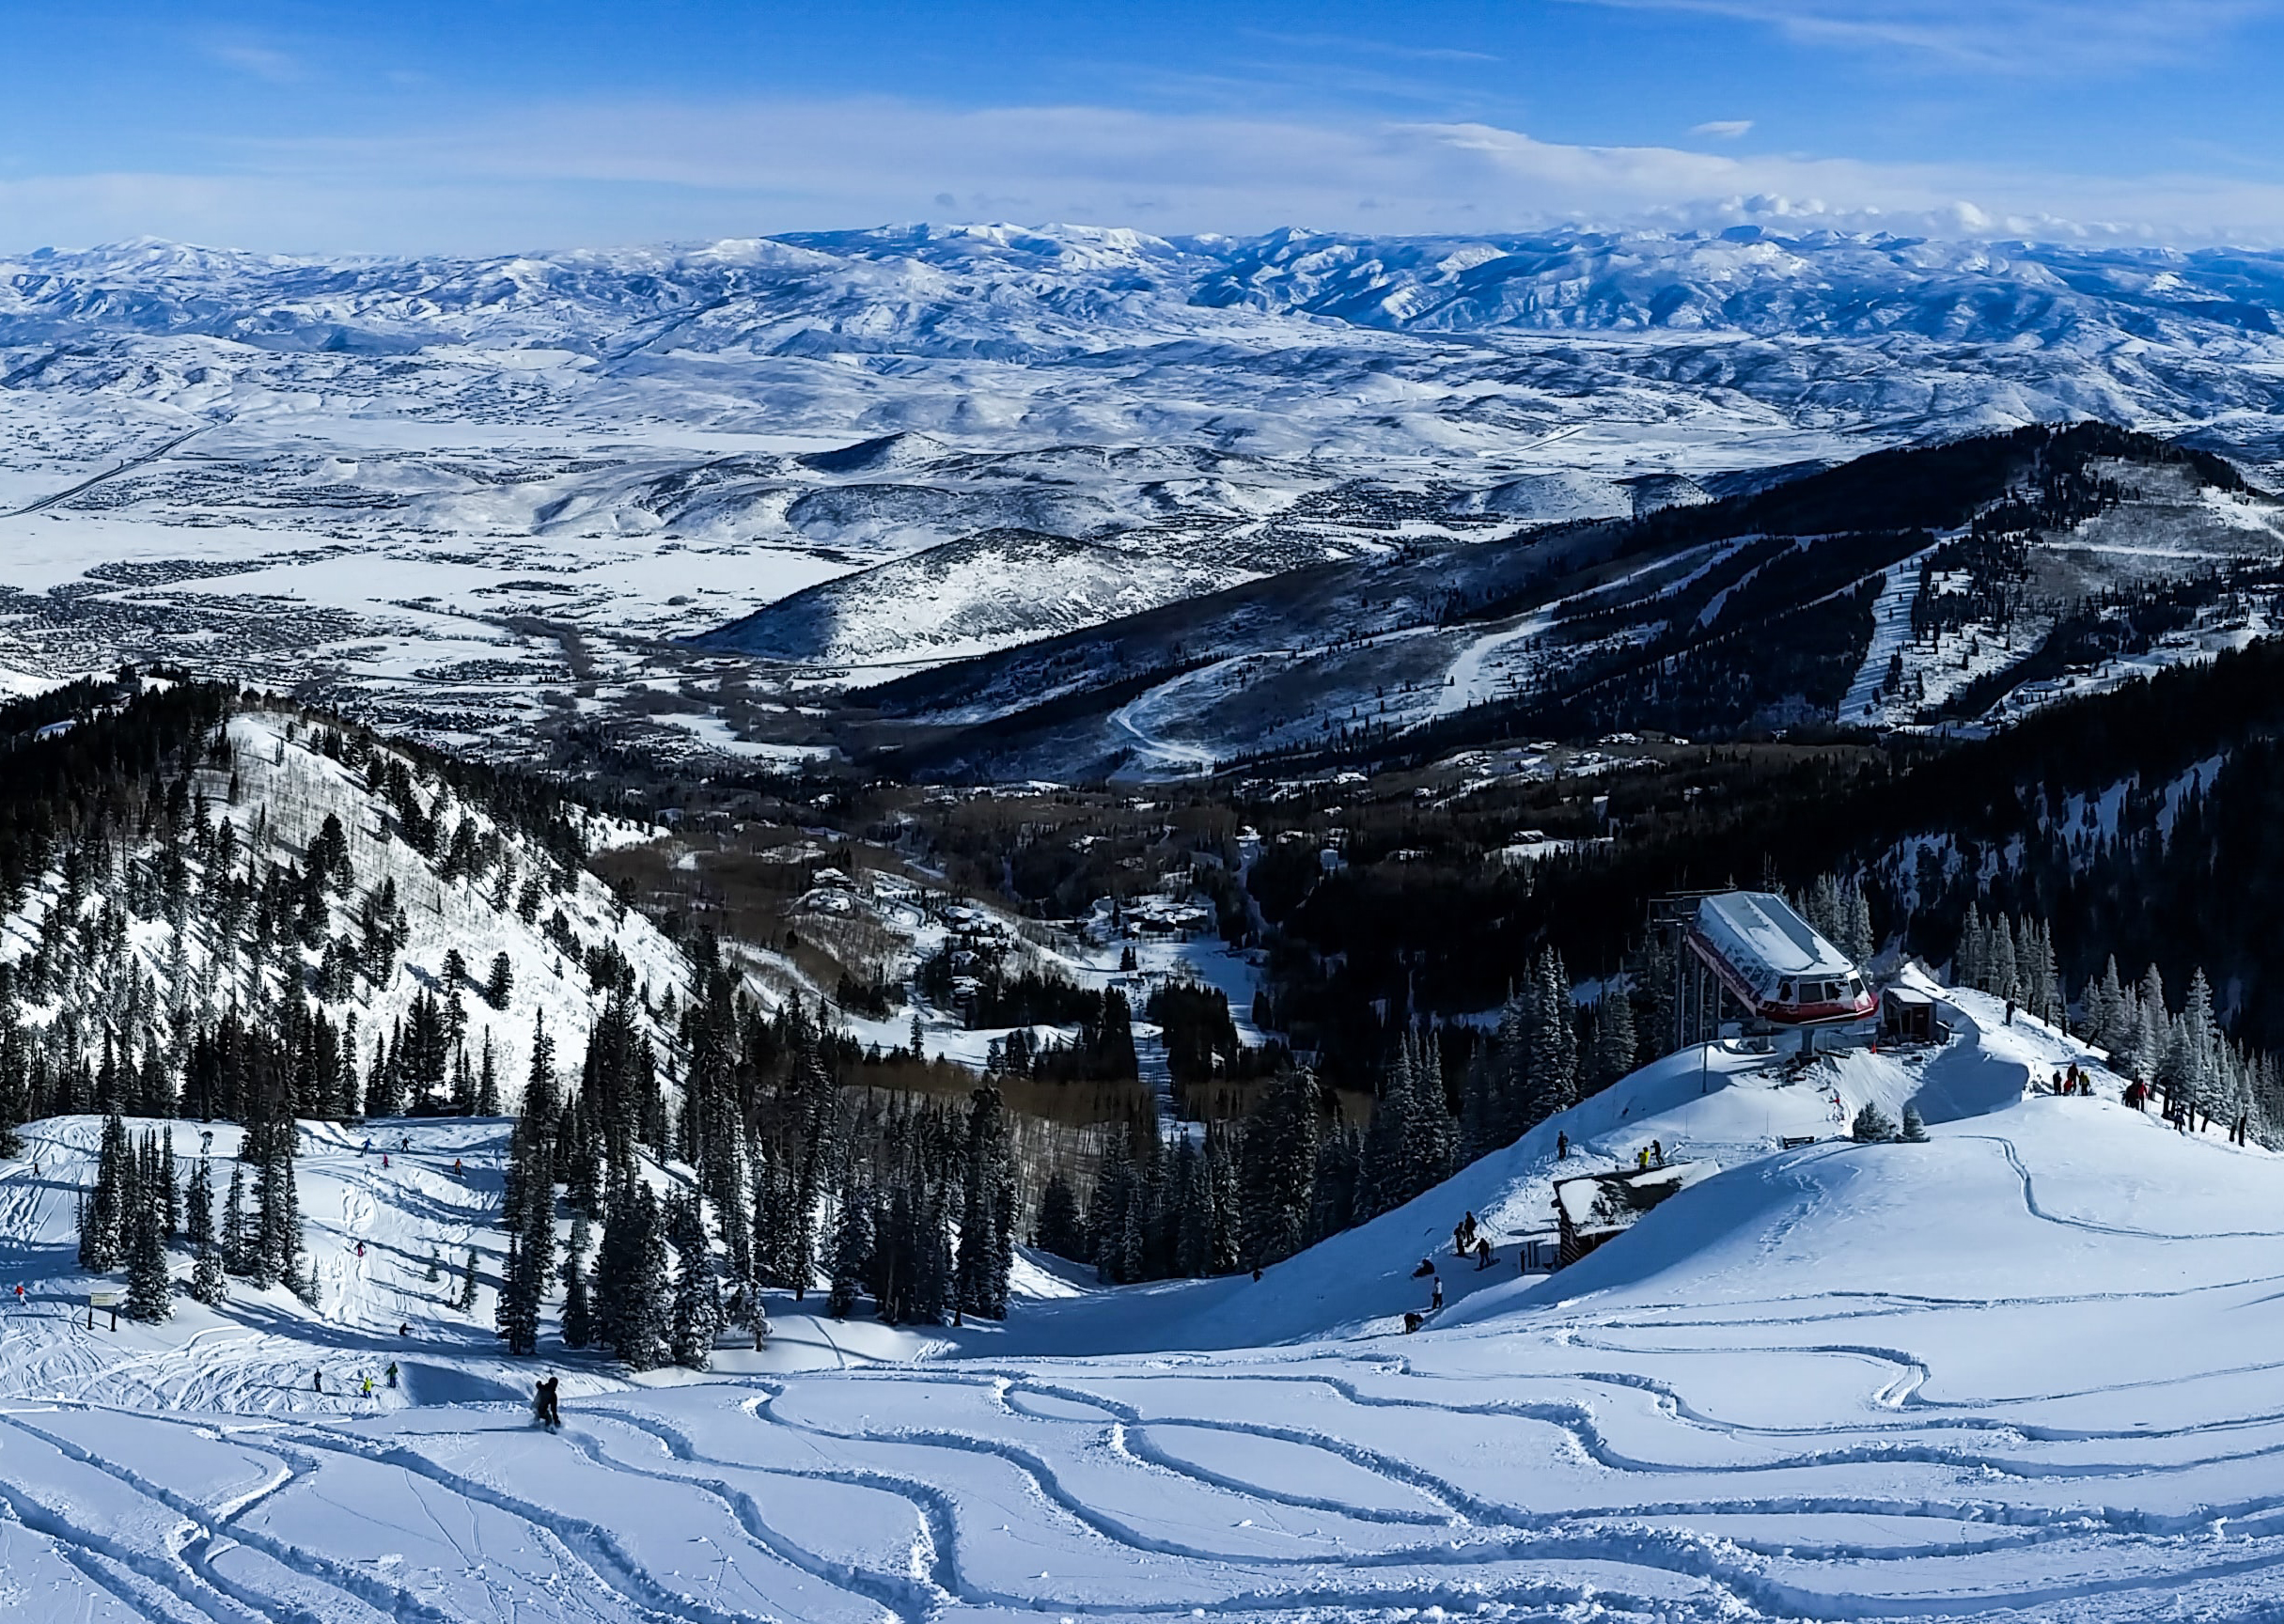 fresh power ski tracks on park city mountain resort looking at mountain scape in the background